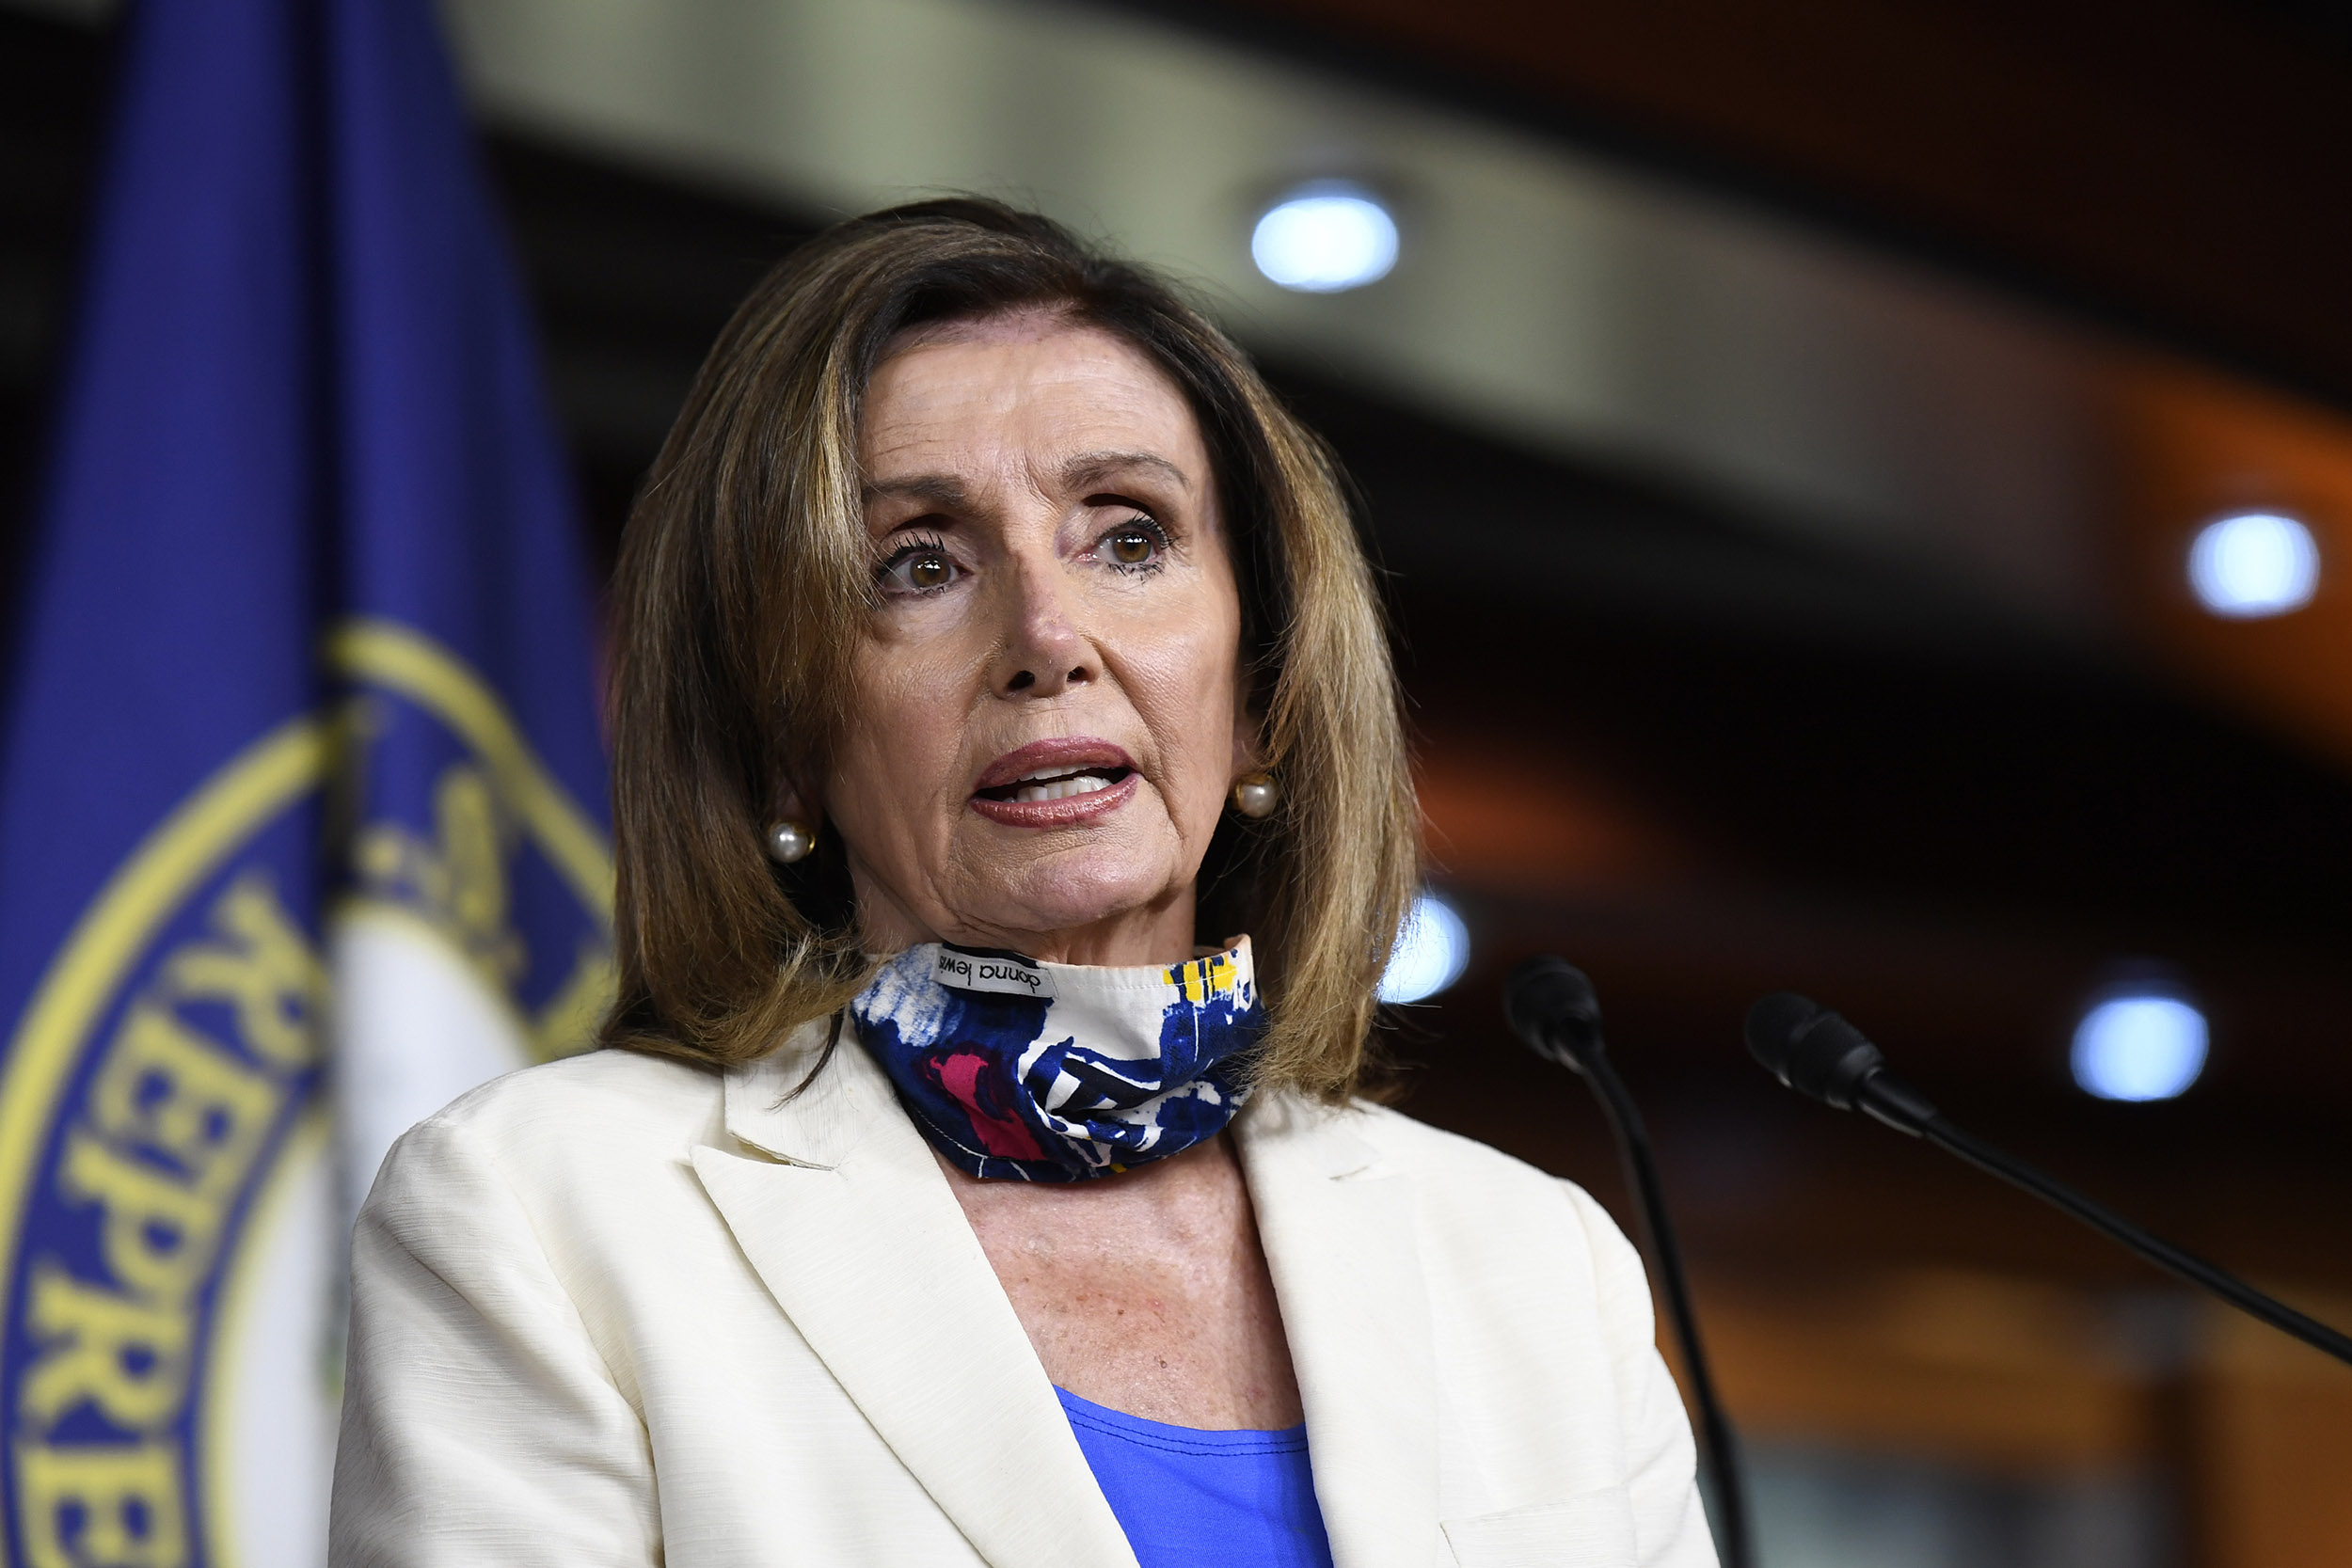 House Speaker Nancy Pelosi of California speaks during a press conference on Capitol Hill in Washington DC, on Thursday, July 16.